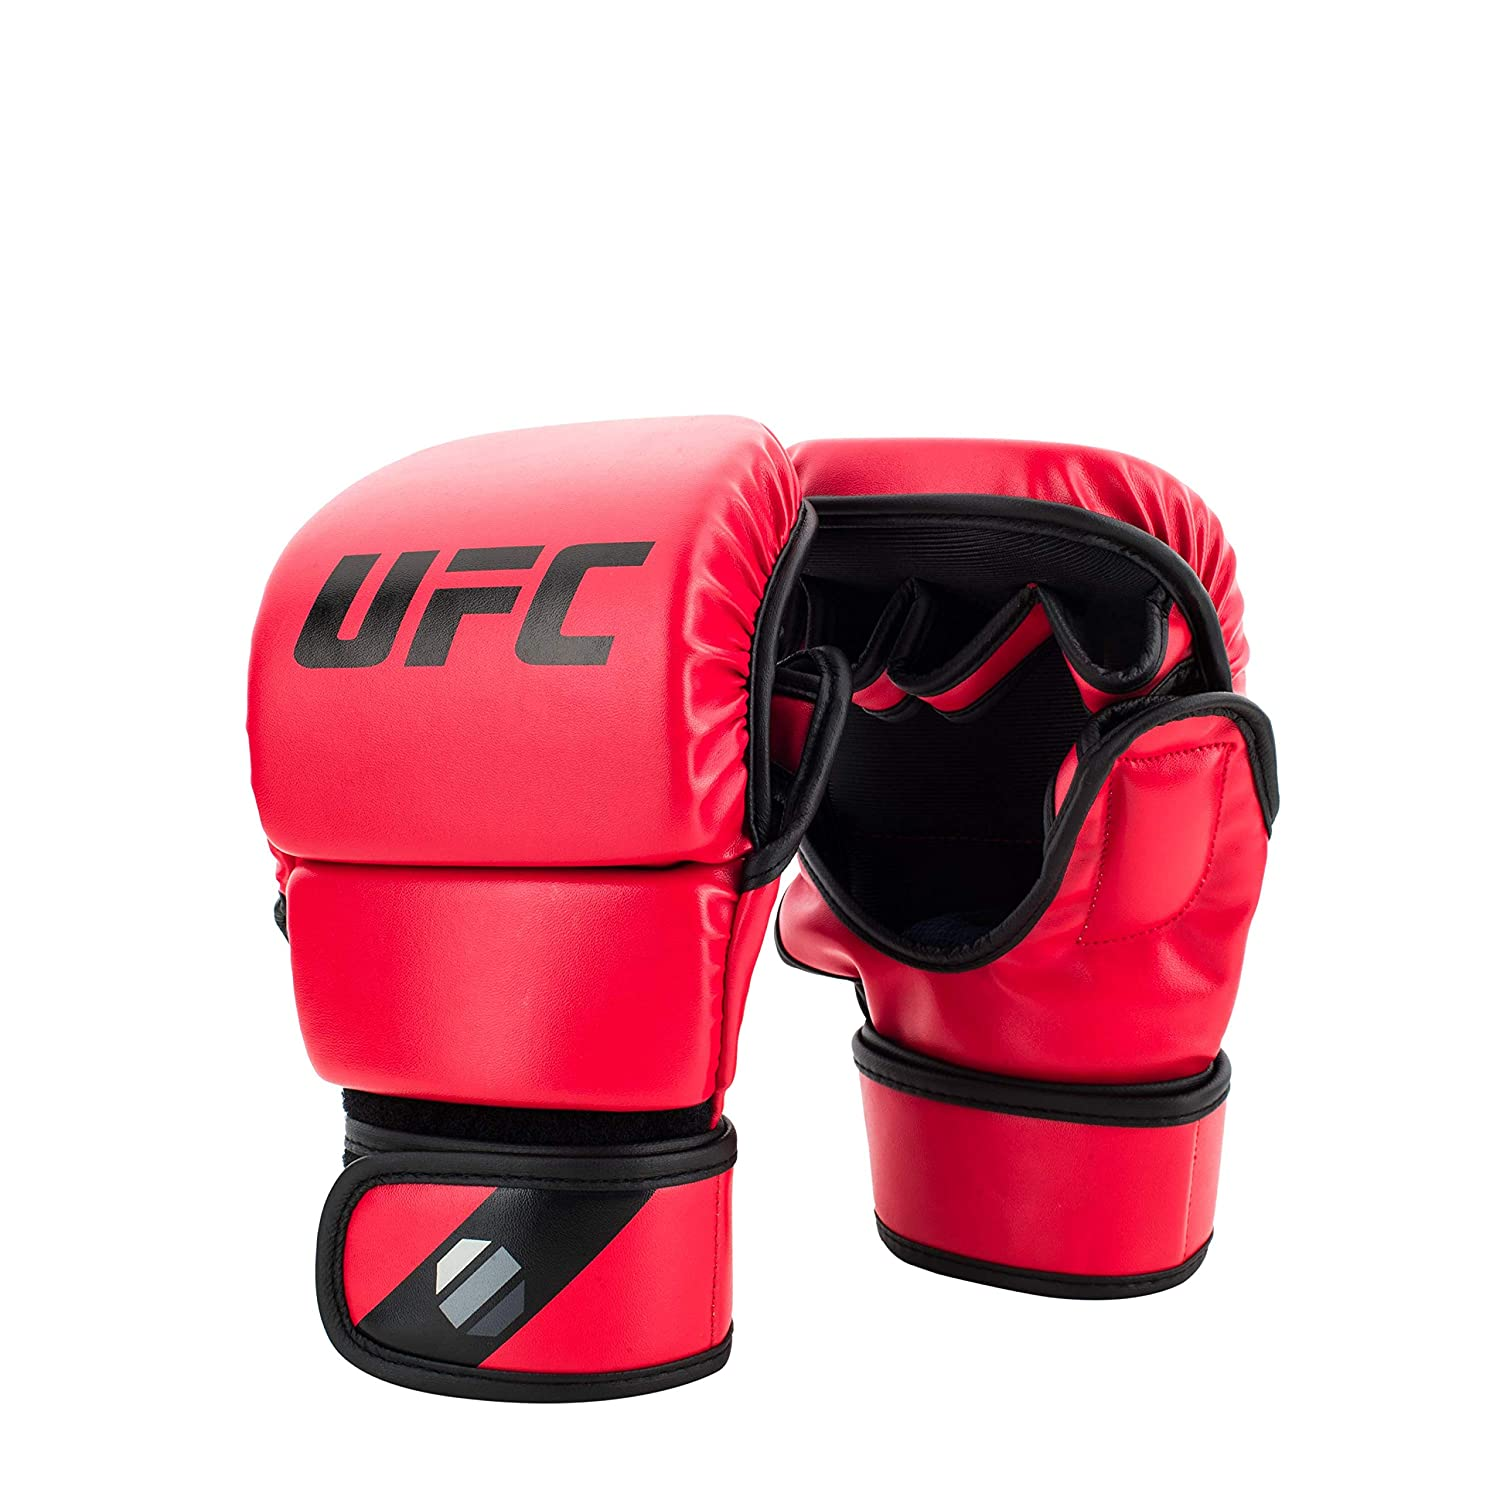 UFC 8oz MMA Sparring Gloves - L/XL - MMA Gloves, Red, Large/X-Large Spirit Combat Sports UFCMSGLXL-R